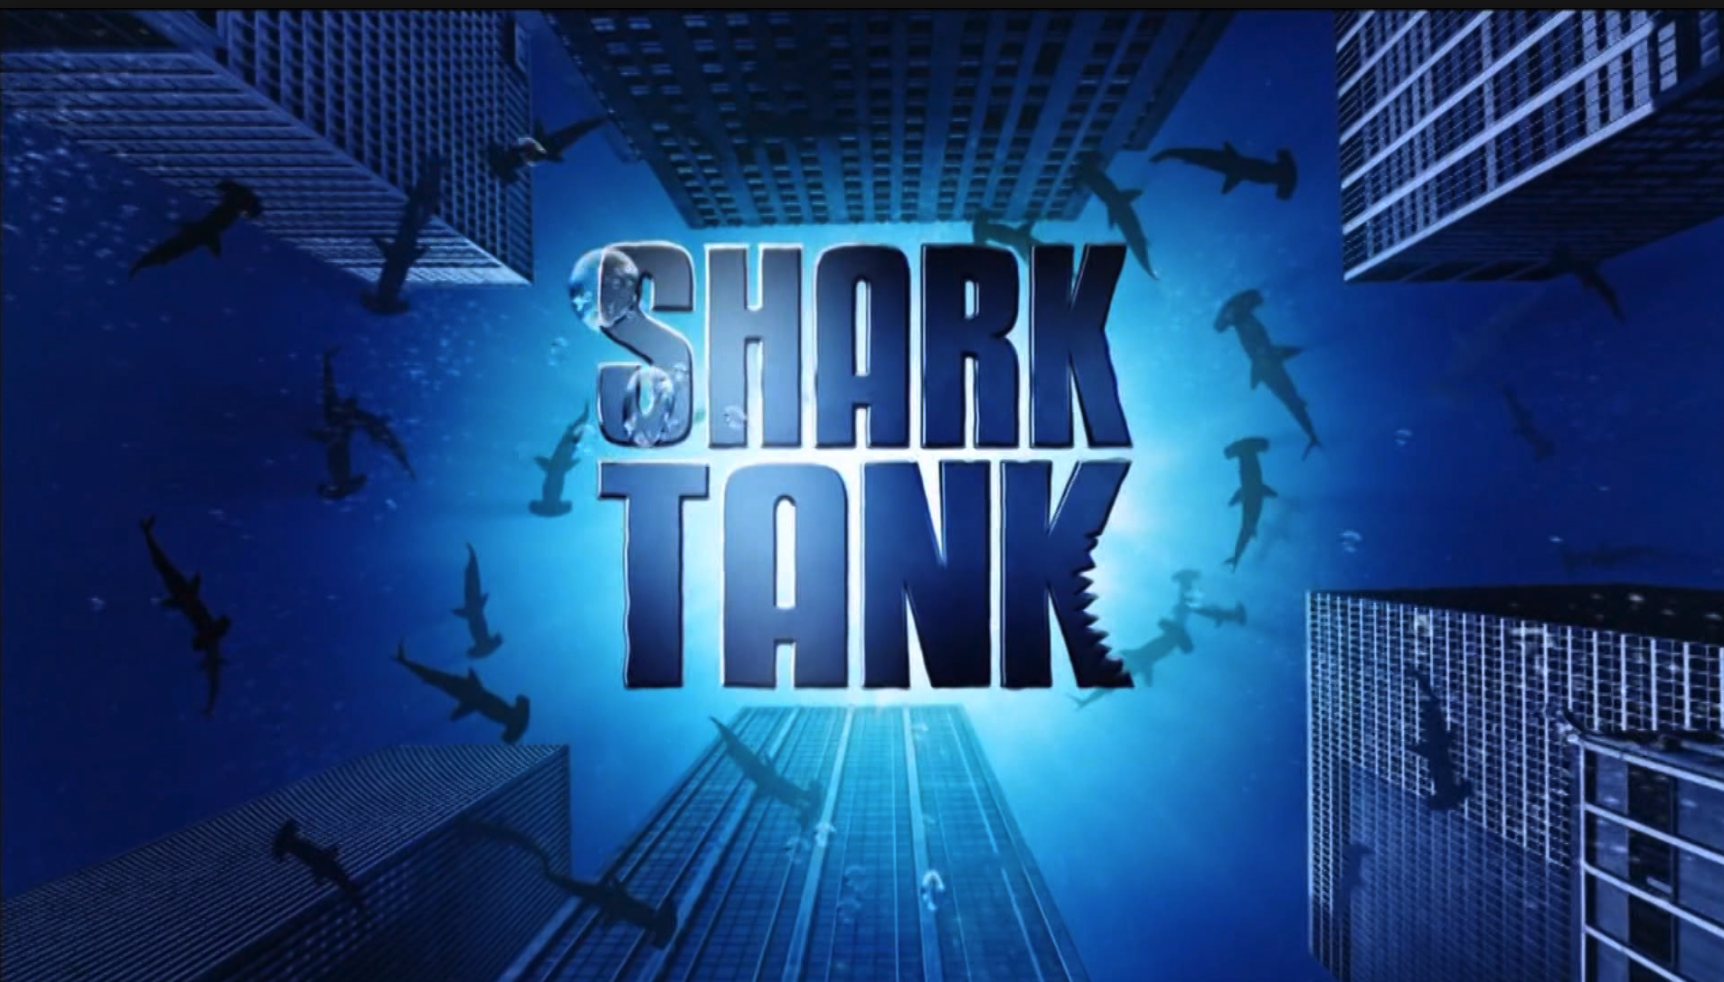 Shark Tank gives entrepreneurial Owls a chance at millions. Shark Tank will take pitches from Temple students on June 11.